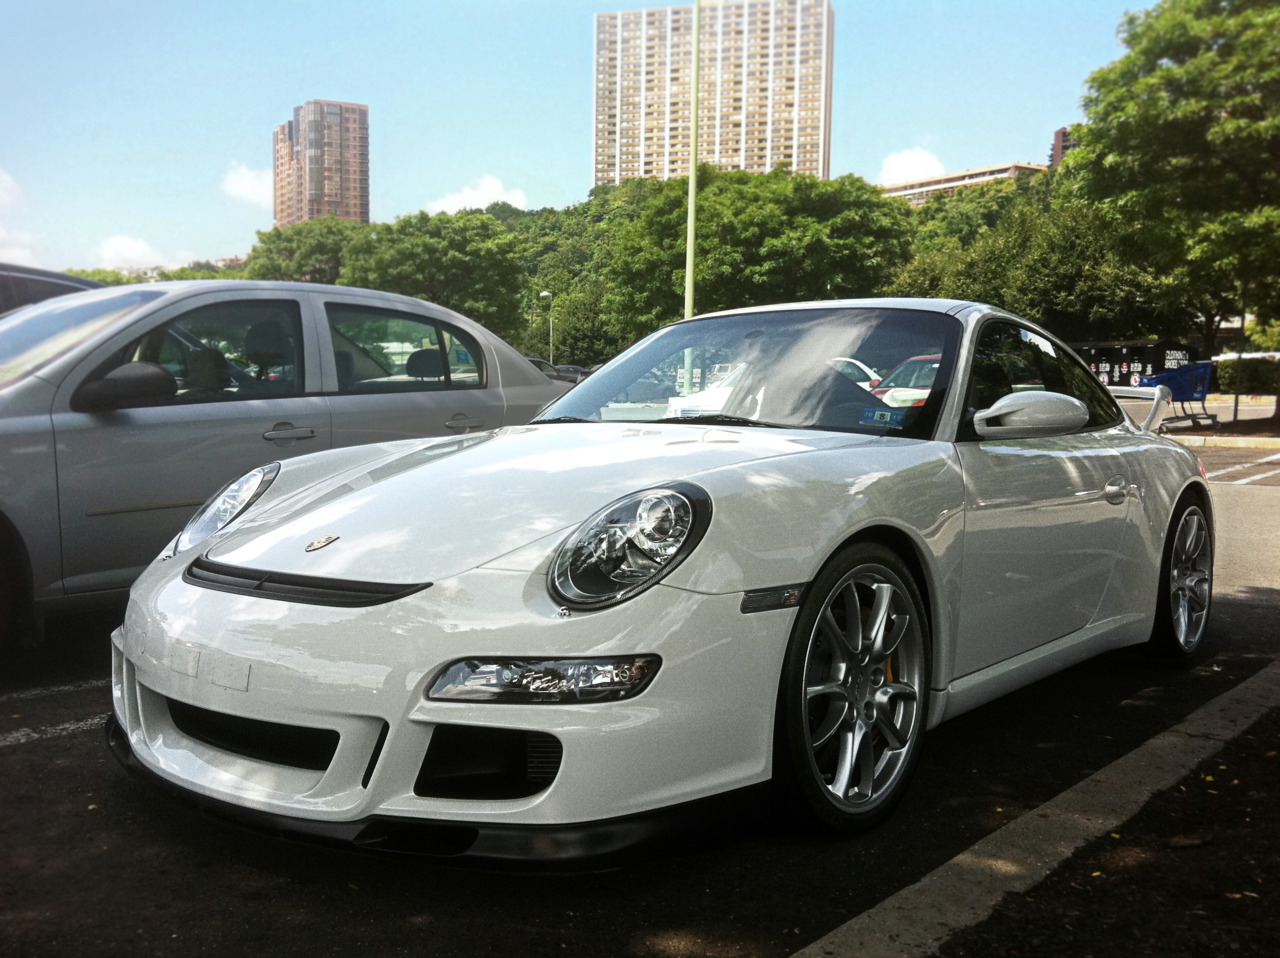 Star Struck Porsche 997 GT3 Photo taken by me with my iPhone in Edgewater, NJ